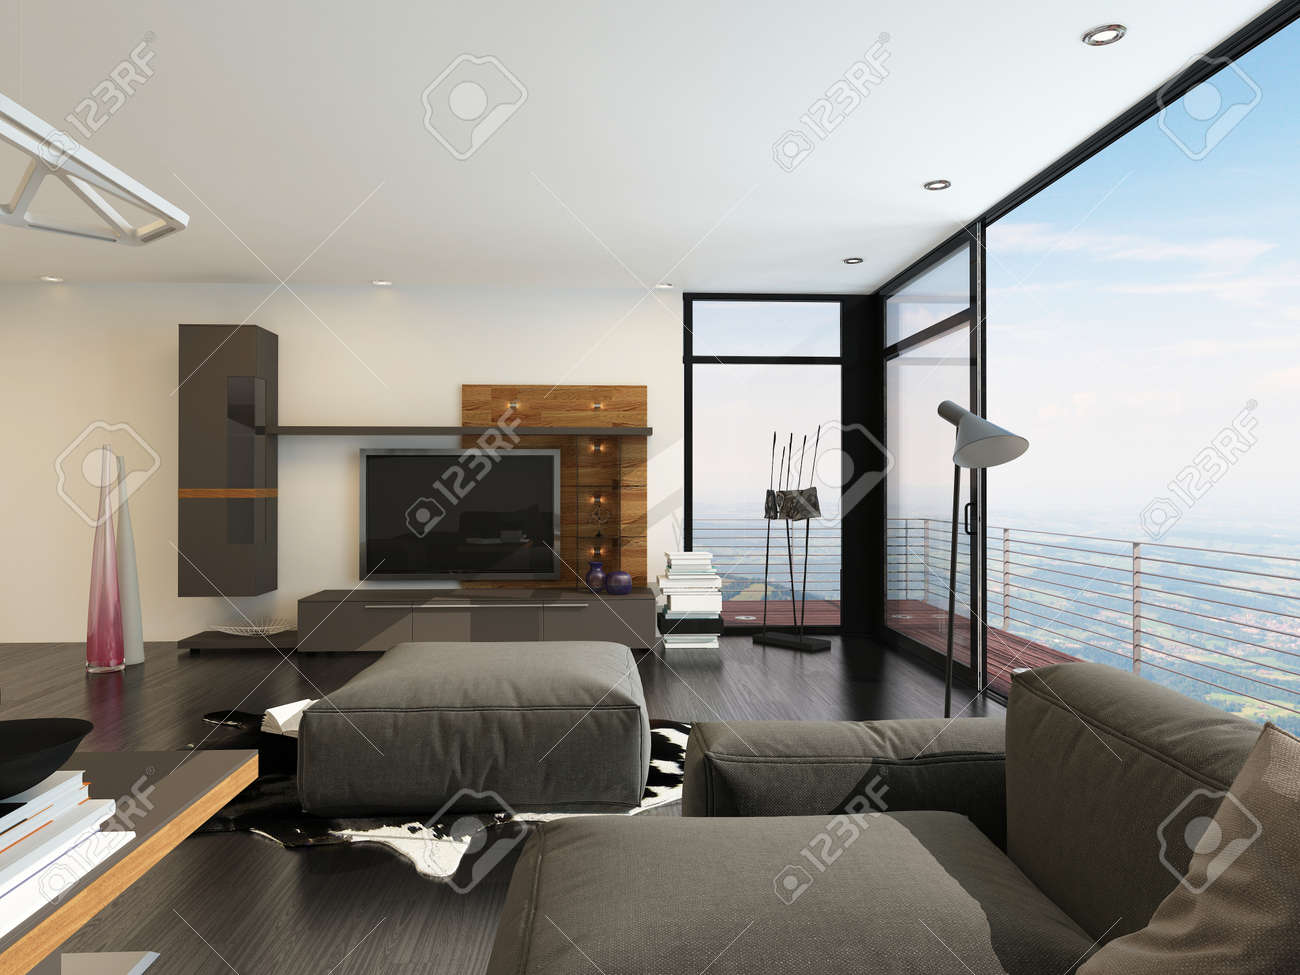 Upmarket Living Room Interior With A Large Flat Screen TV Brown Lounge Suite And Angled